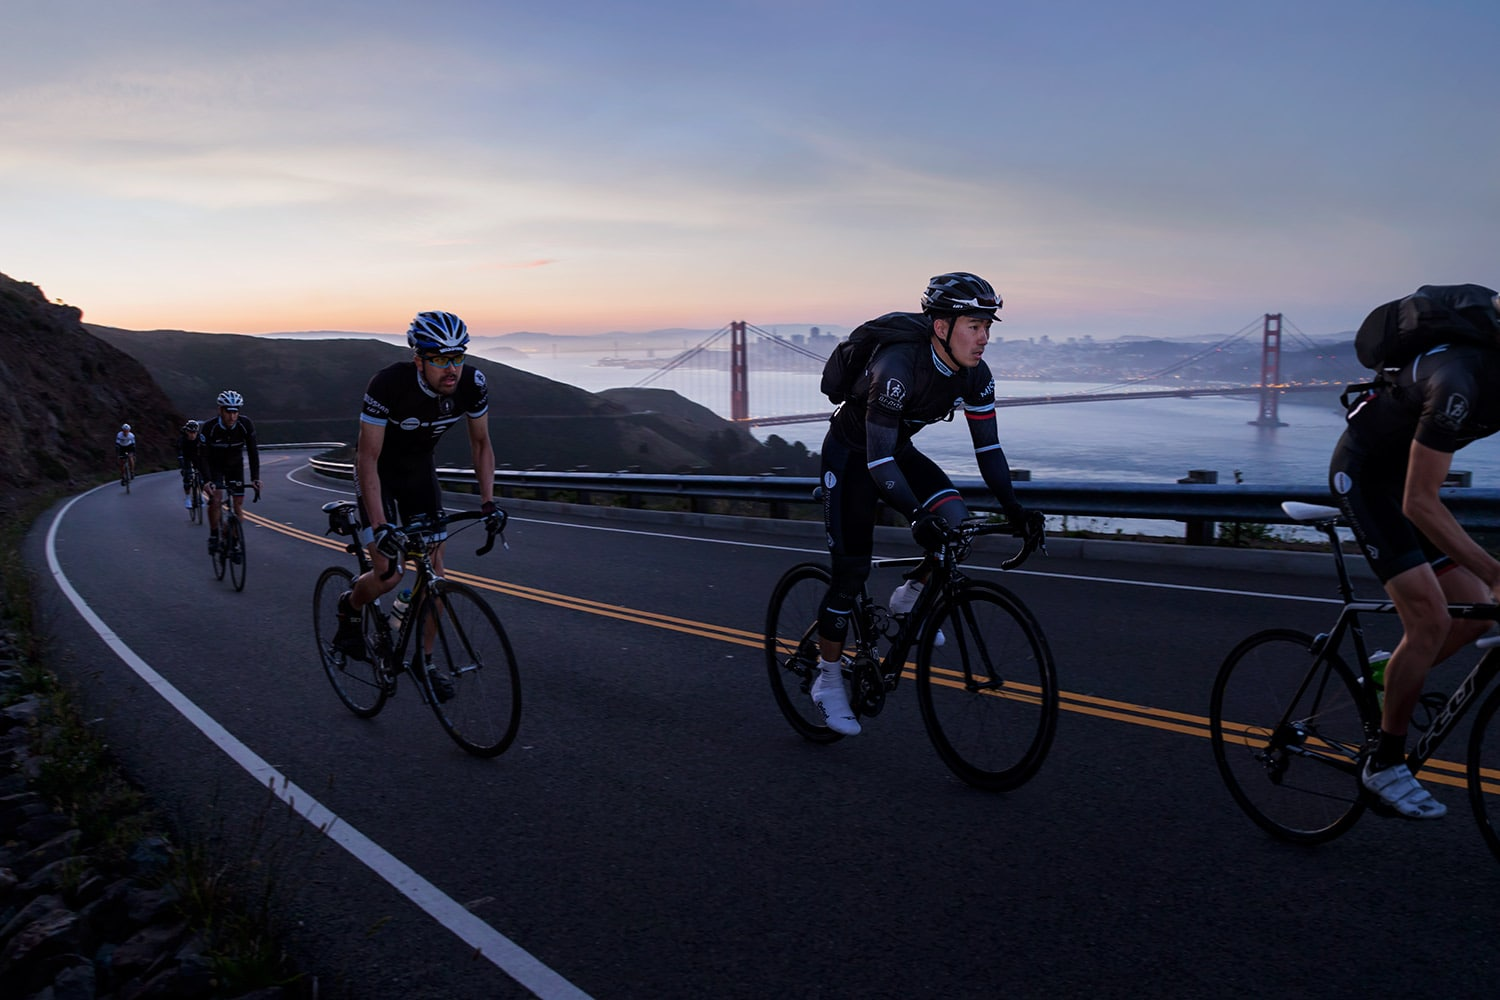 Athletes-Cyclists-ridding-up-hill-with-golden-gate-bridge-and-city-Rod-McLean